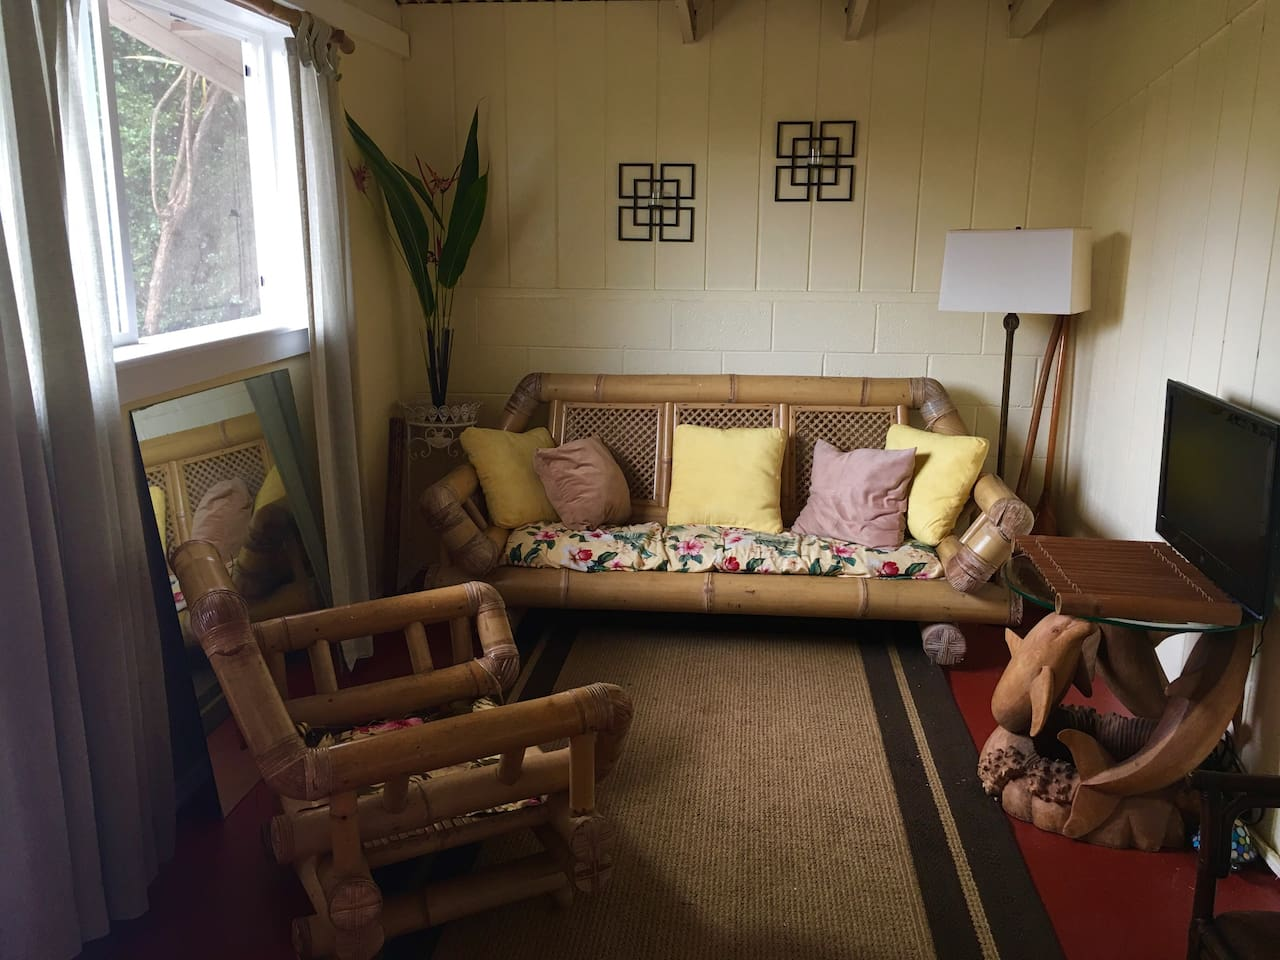 """Private living room space, decorated """"Aloha style""""with bamboo and teak furniture."""